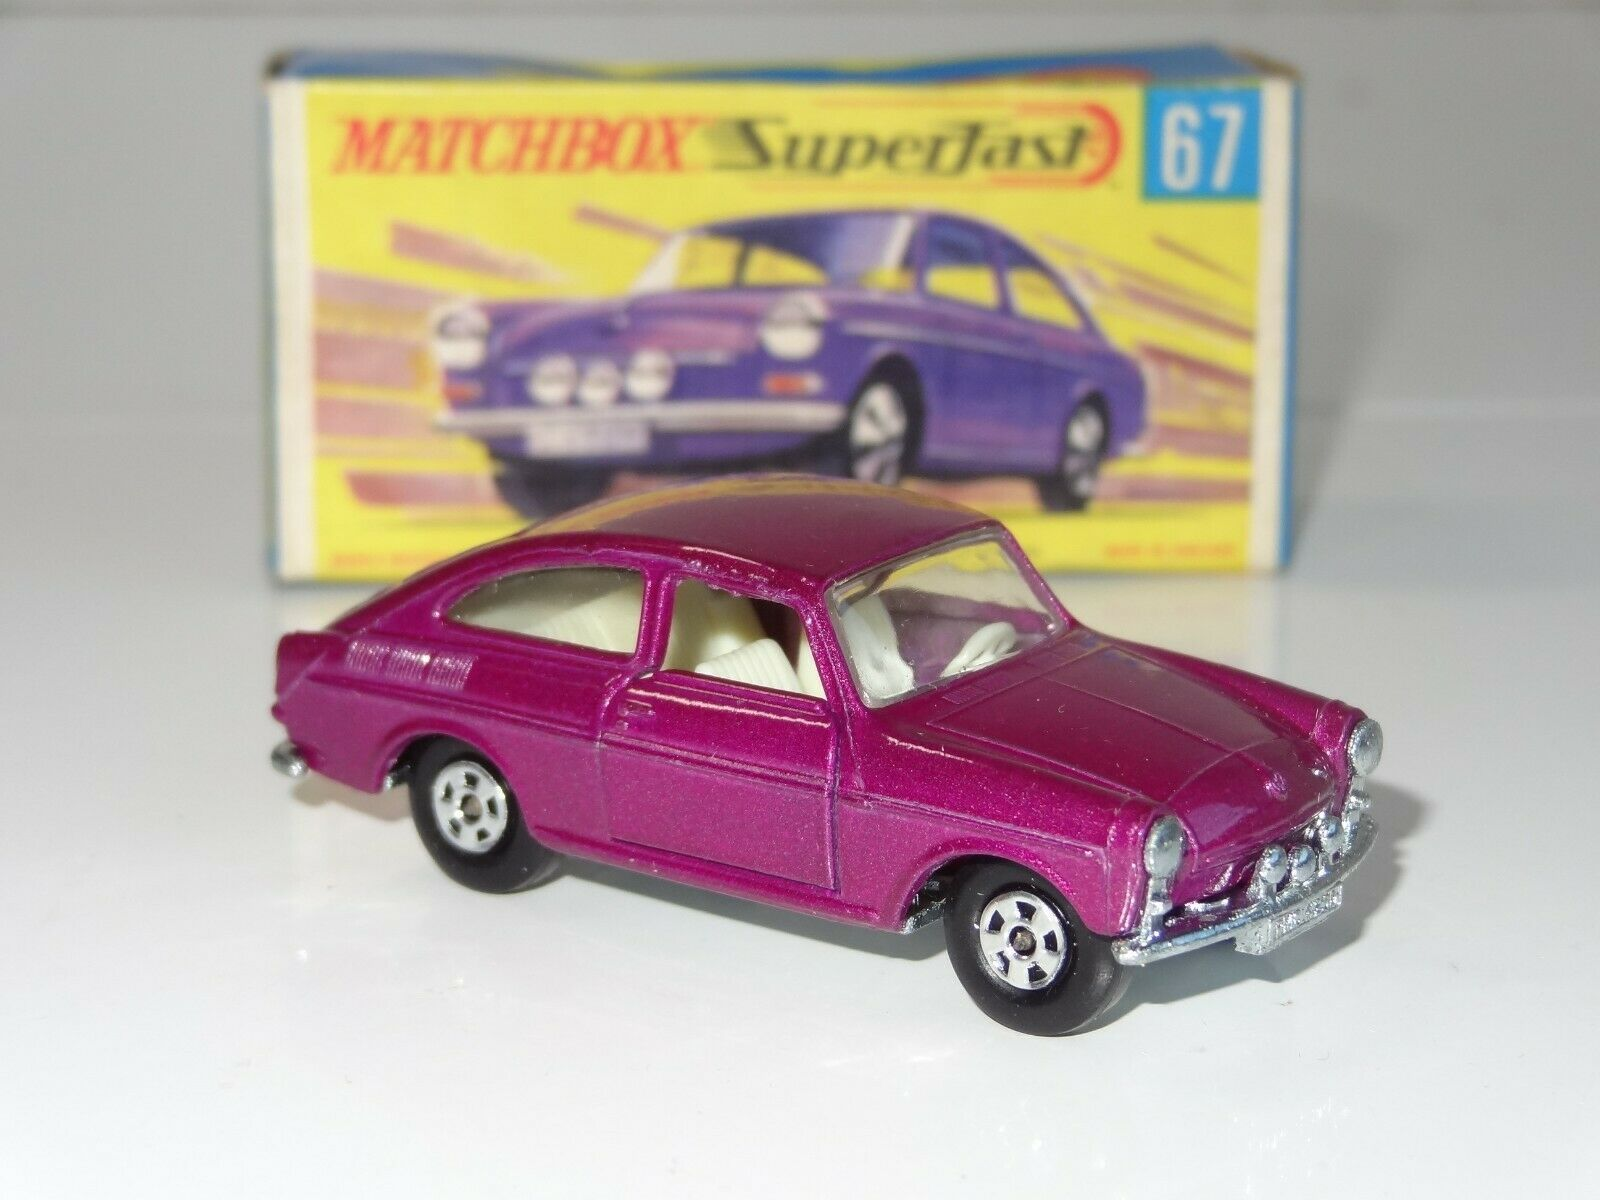 (B) (B) matchbox lesney superfast VW VOLKSWAGEN 1600TL - 67